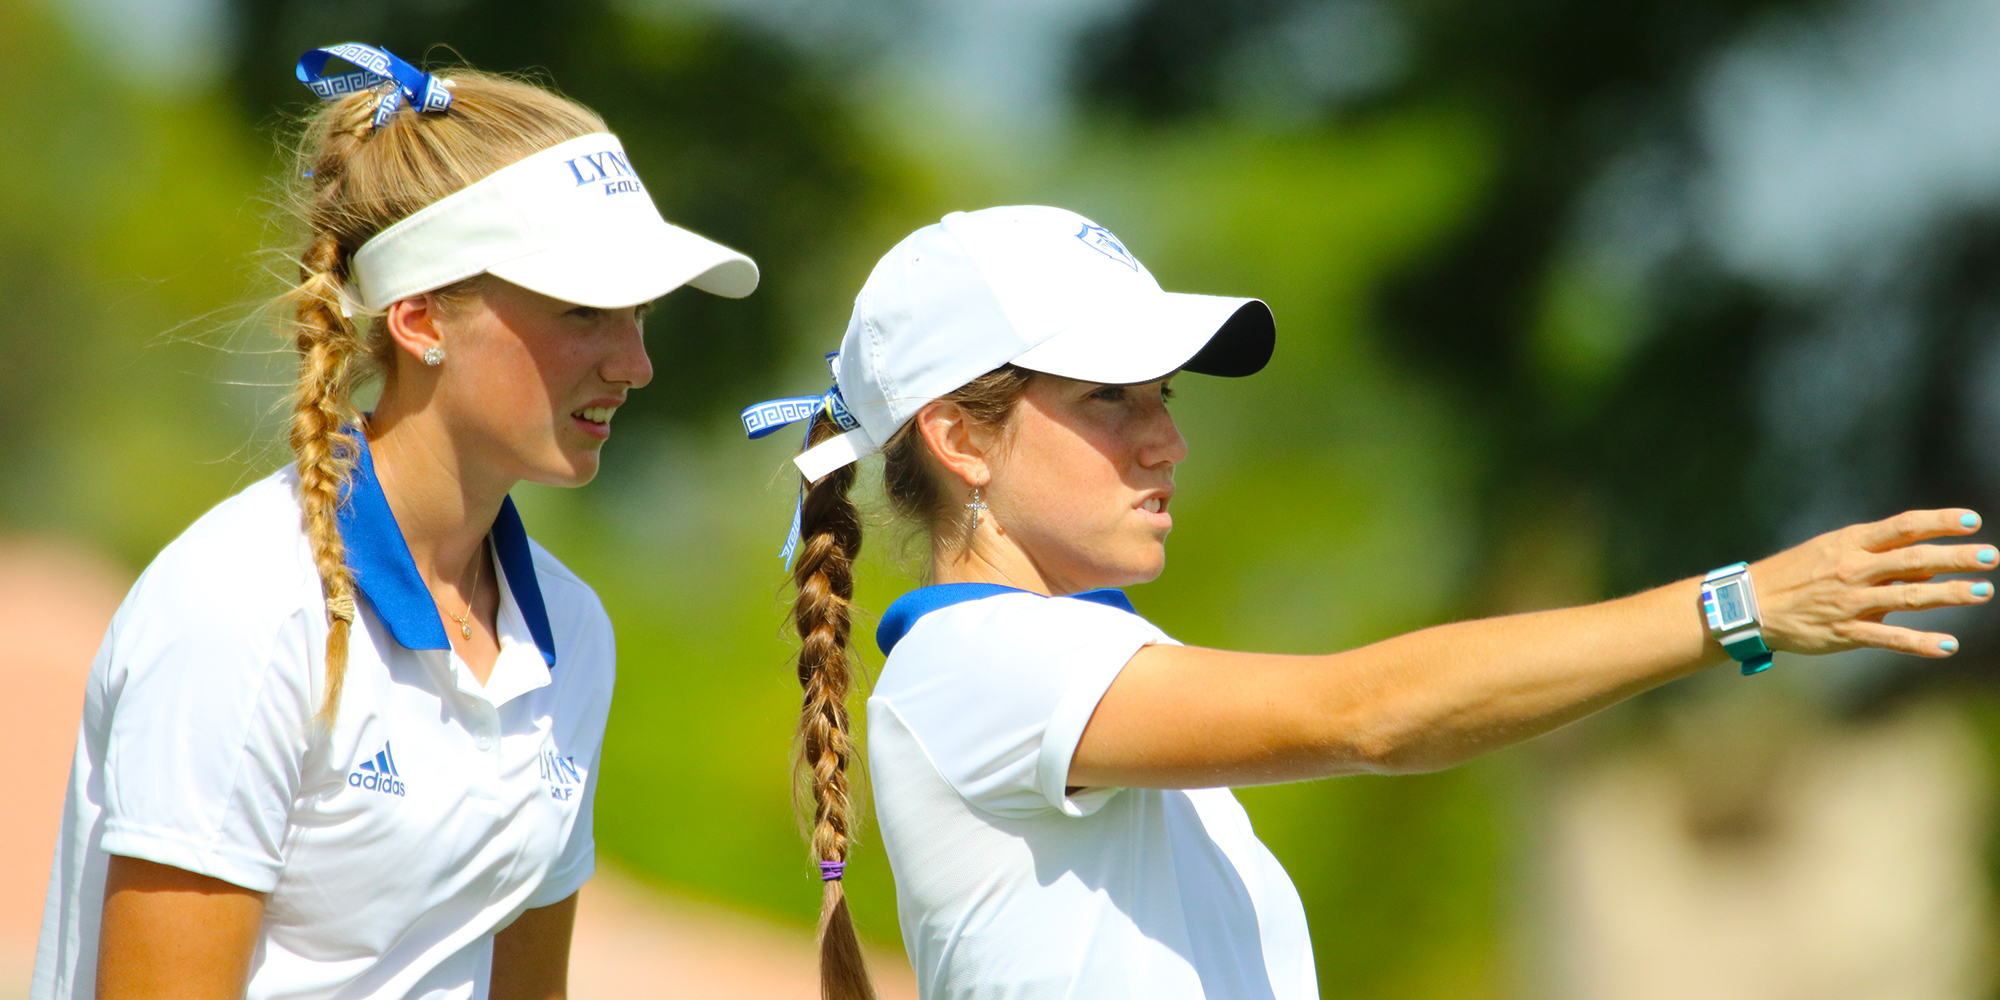 Women's Golf Tied for Fifth at Peggy Kirk Bell